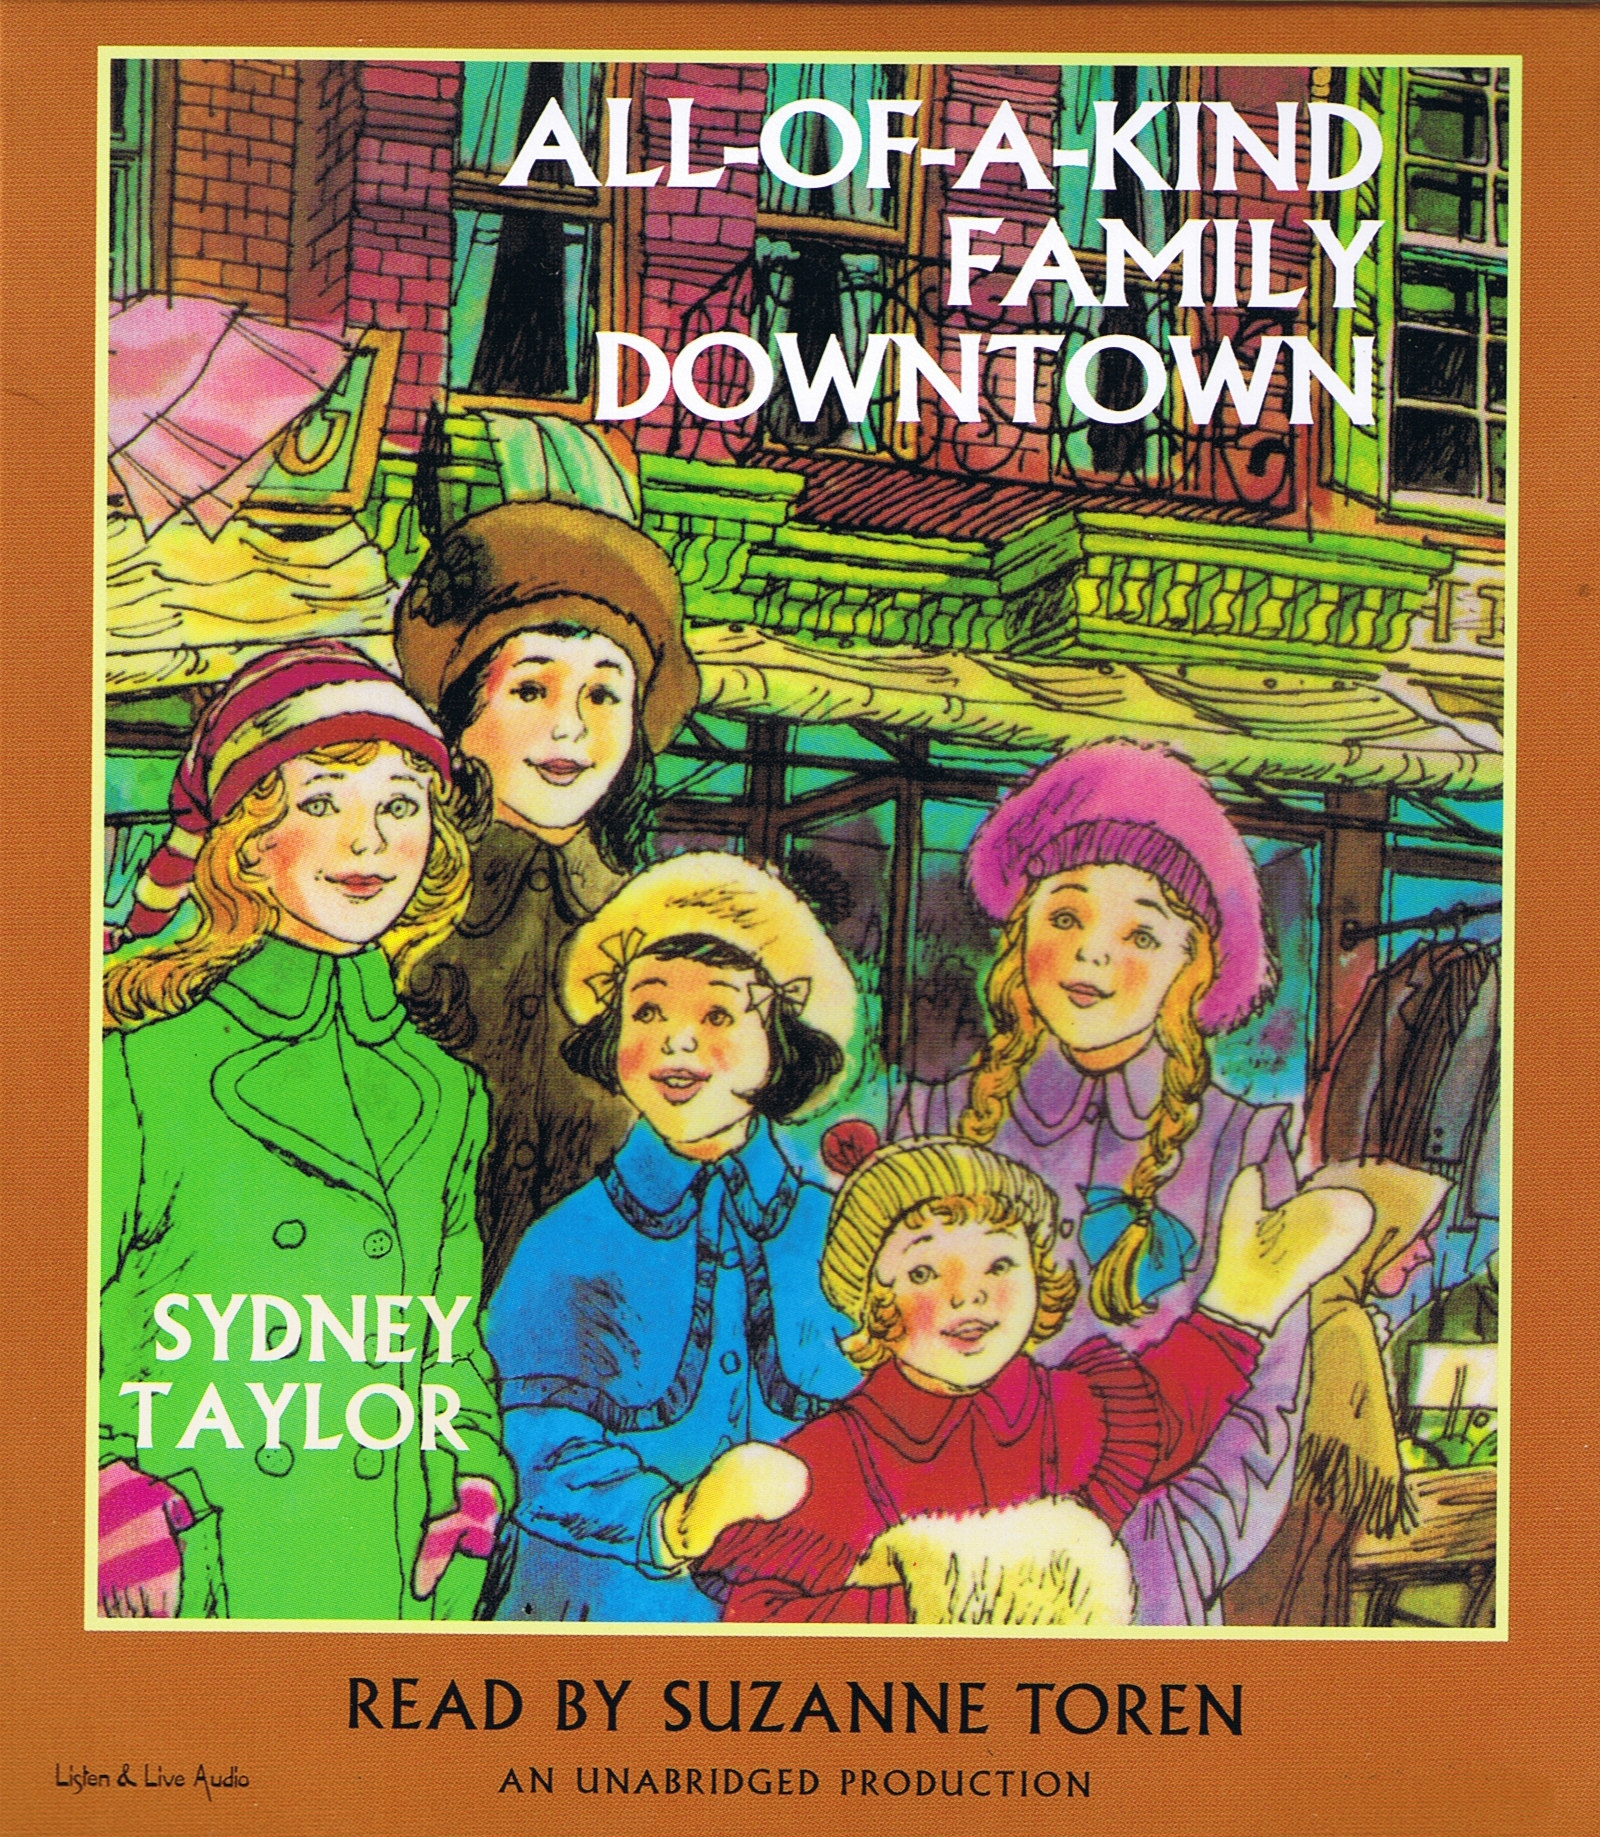 All-Of-A-Kind Family Downtown [3CS]